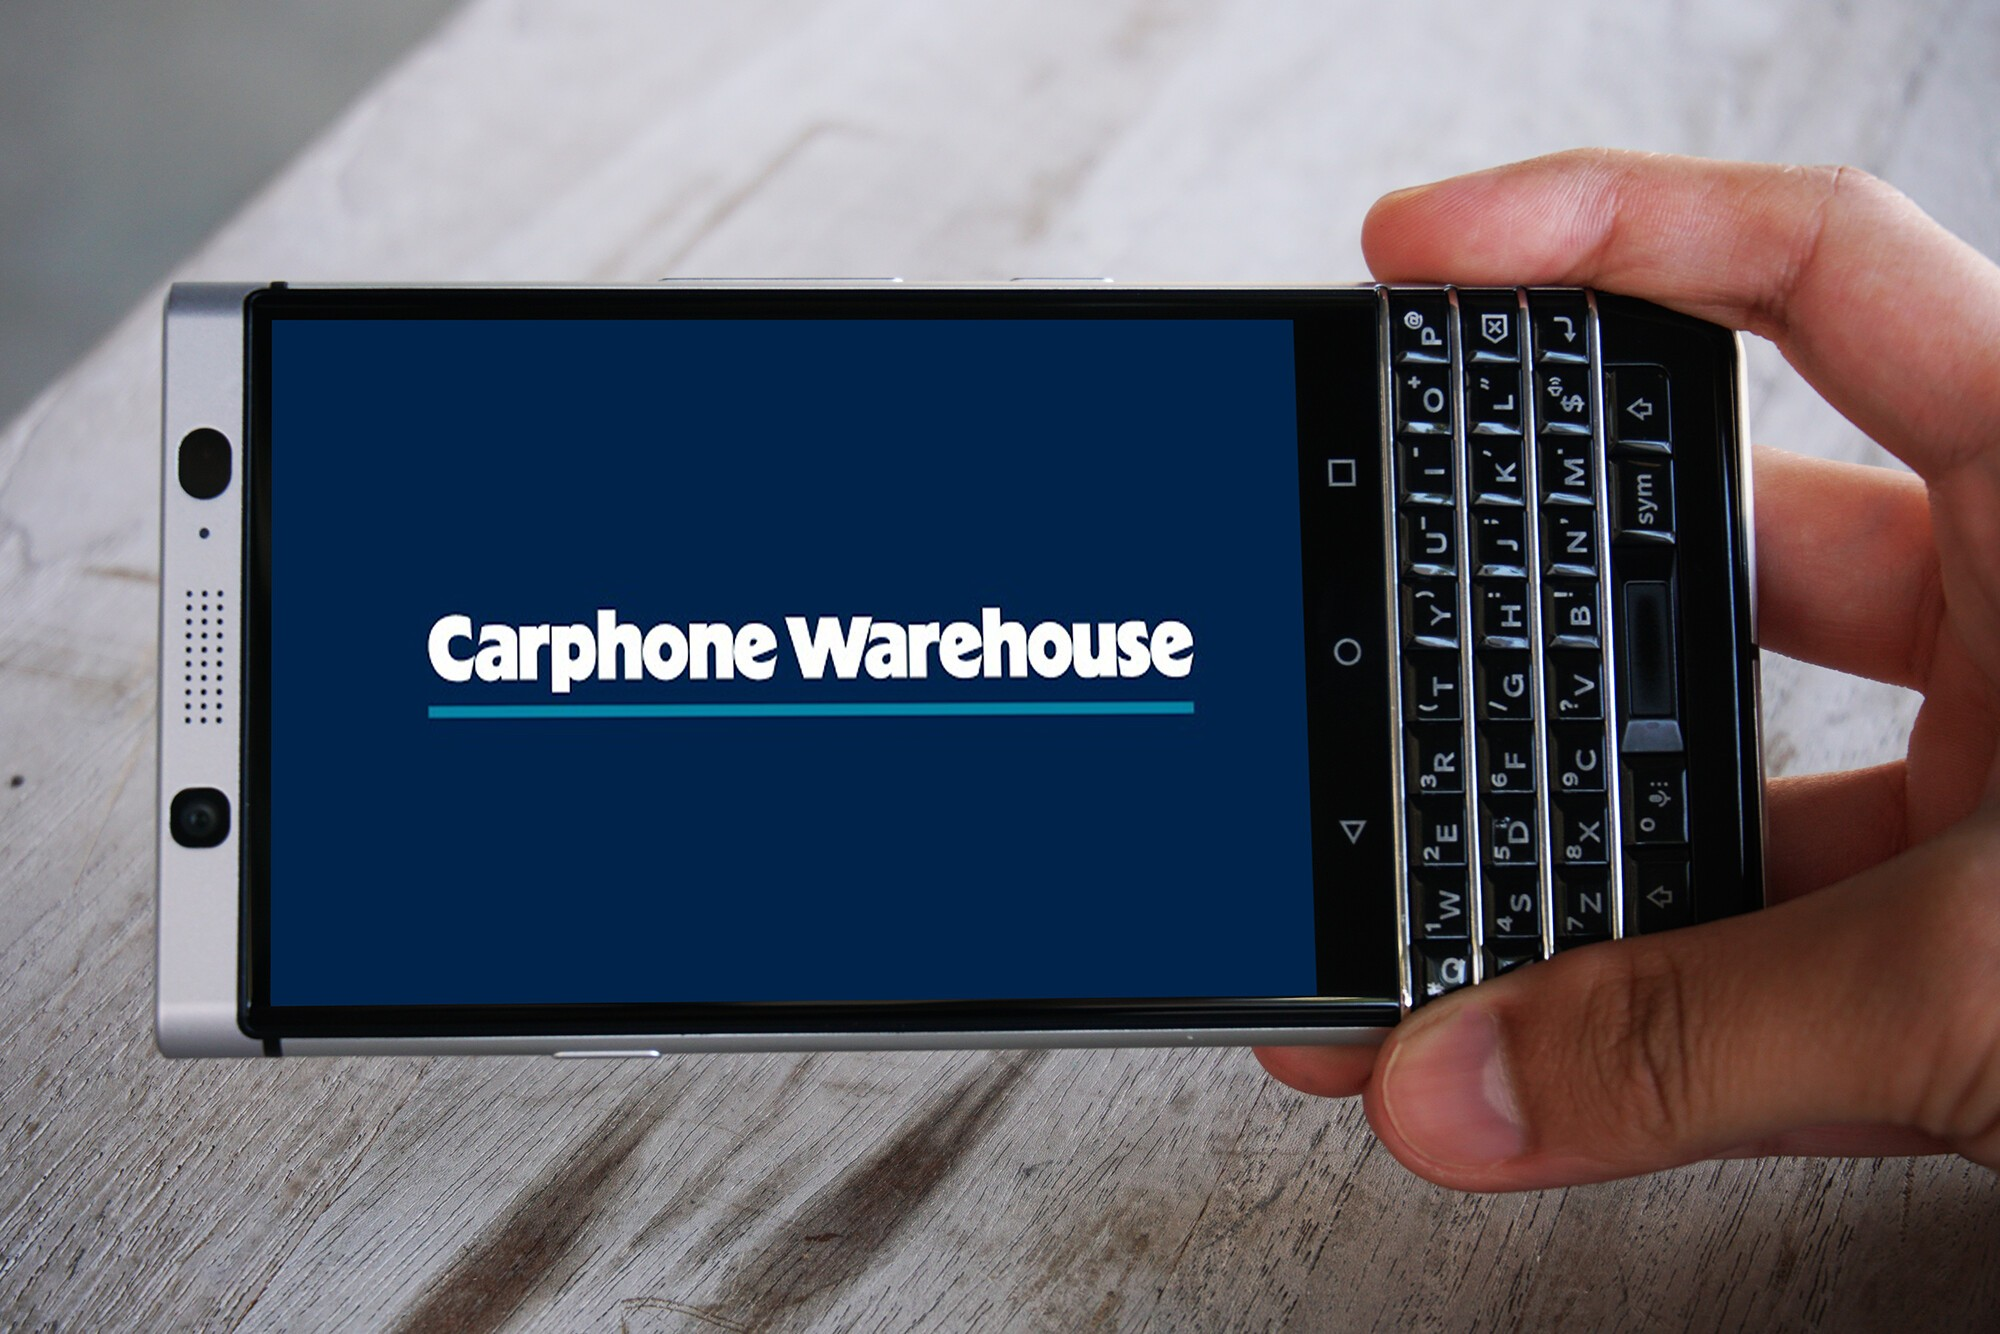 Looking for Carphone Warehouse free delivery offers? Search no further! All next-day deliveries are free, 7 days a week, delivered either to your home or nearest store with a 1-hour time slot, so you won't wait all day.